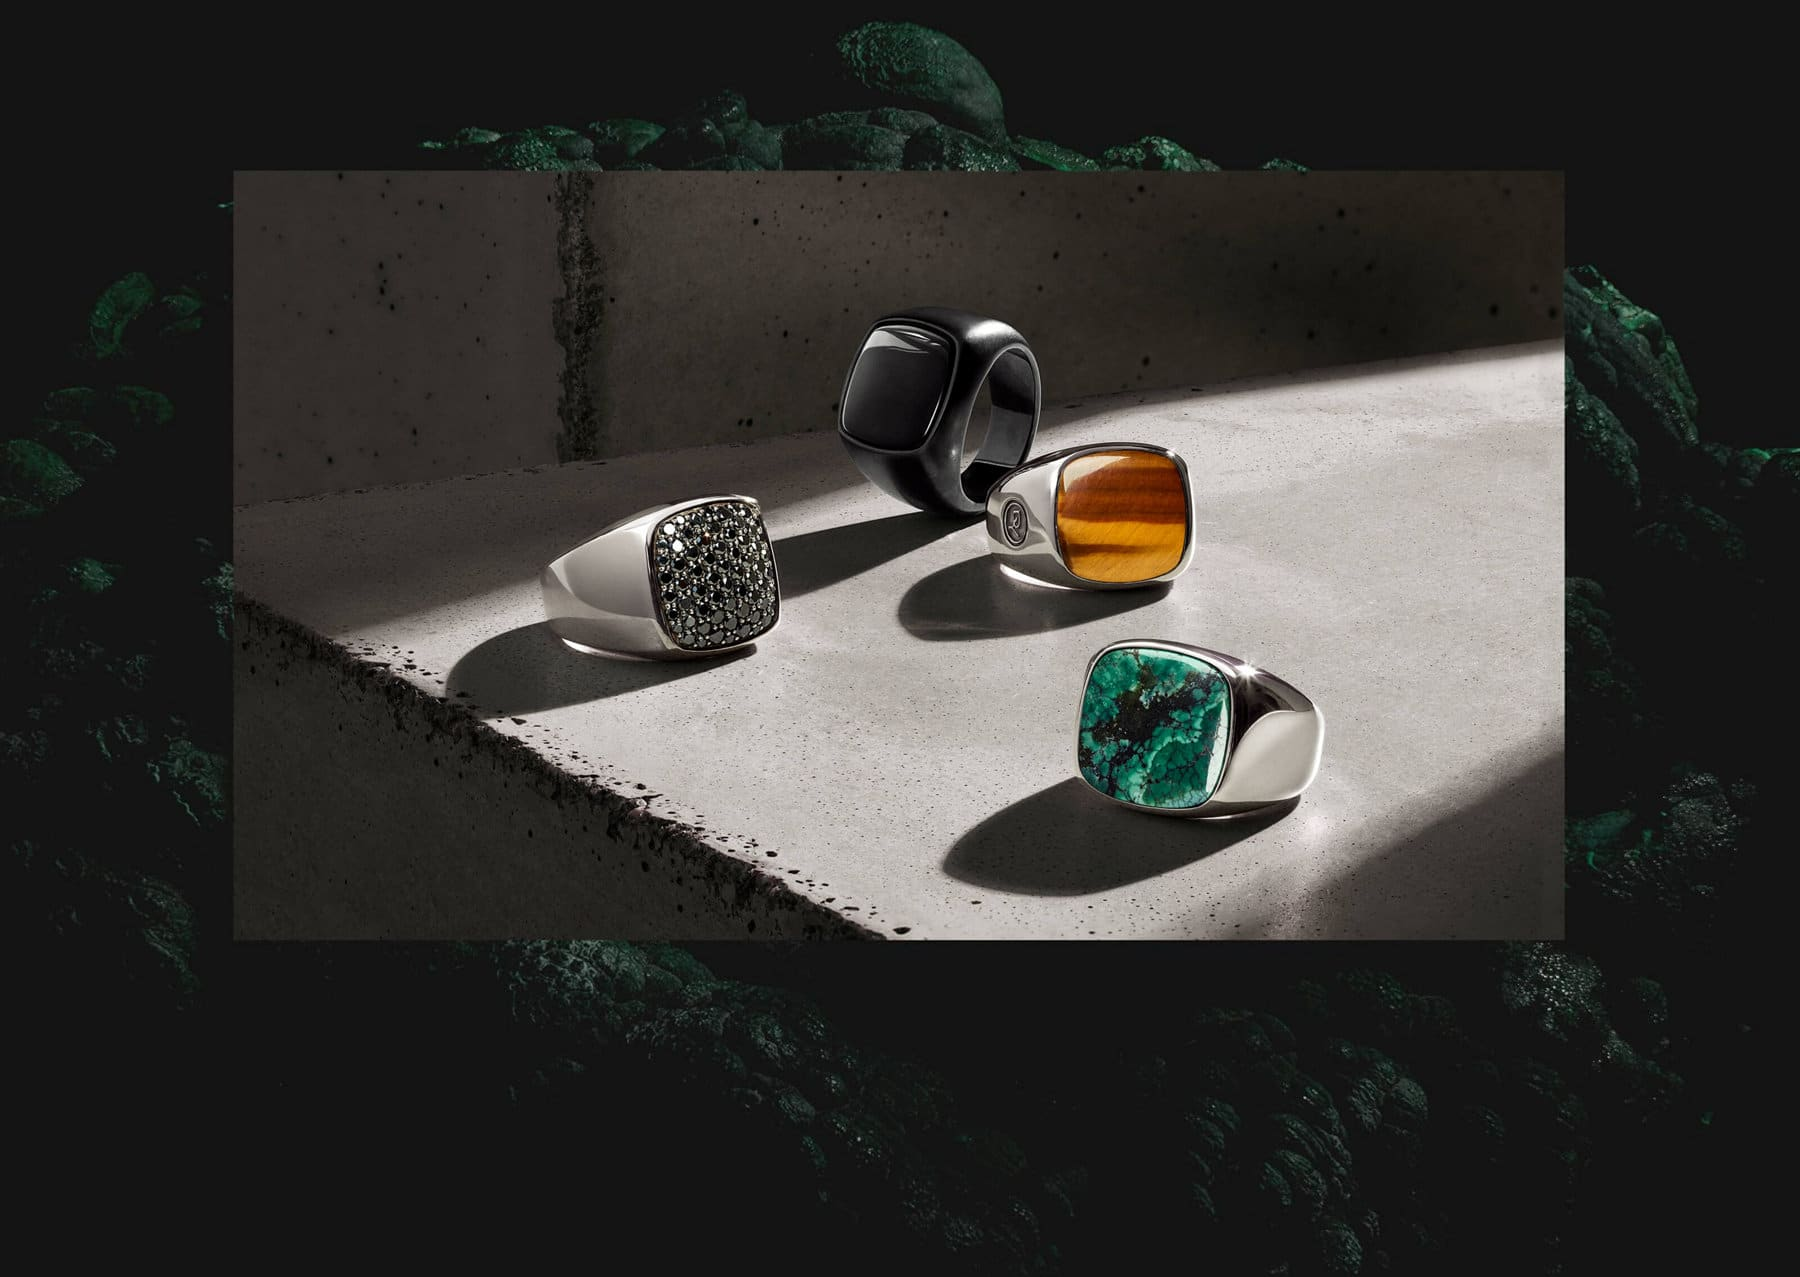 A group of David Yurman Exotic Stone signet rings in sterling silver with pietersite, red dinosaur agate and tiger's eye, laying on a light grey stone surface and casting long shadows.